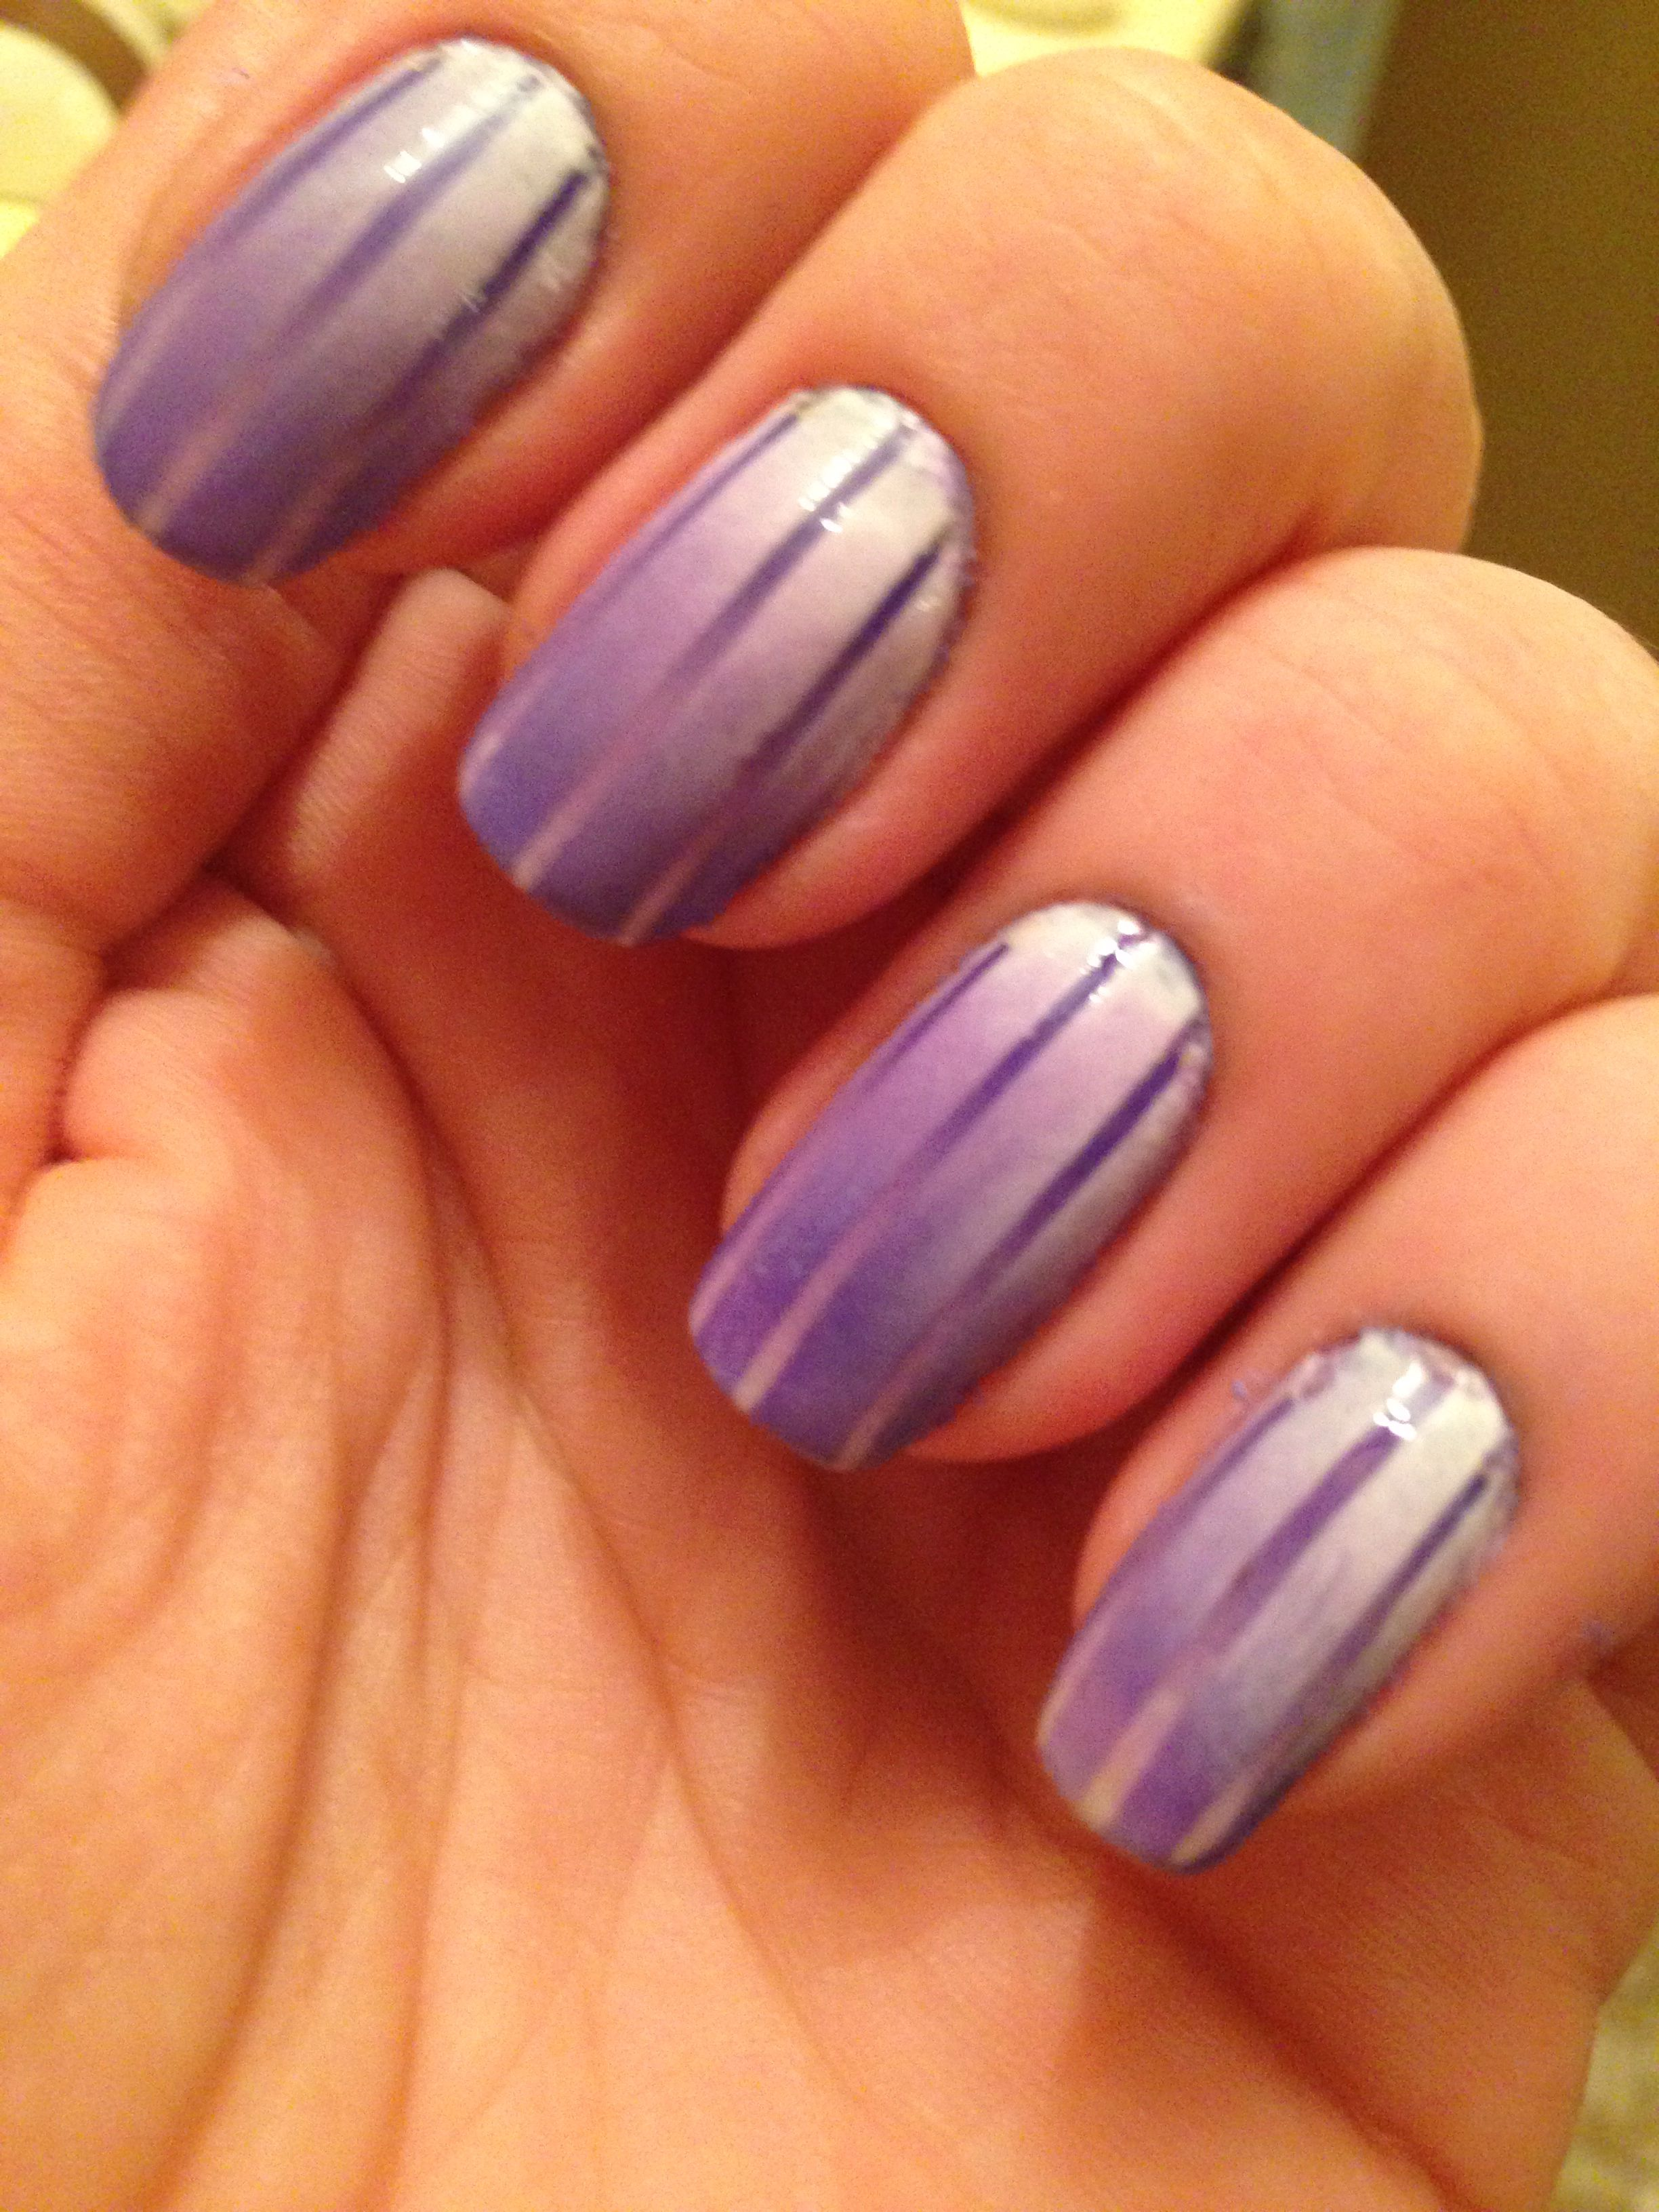 Stripes and gradient mani